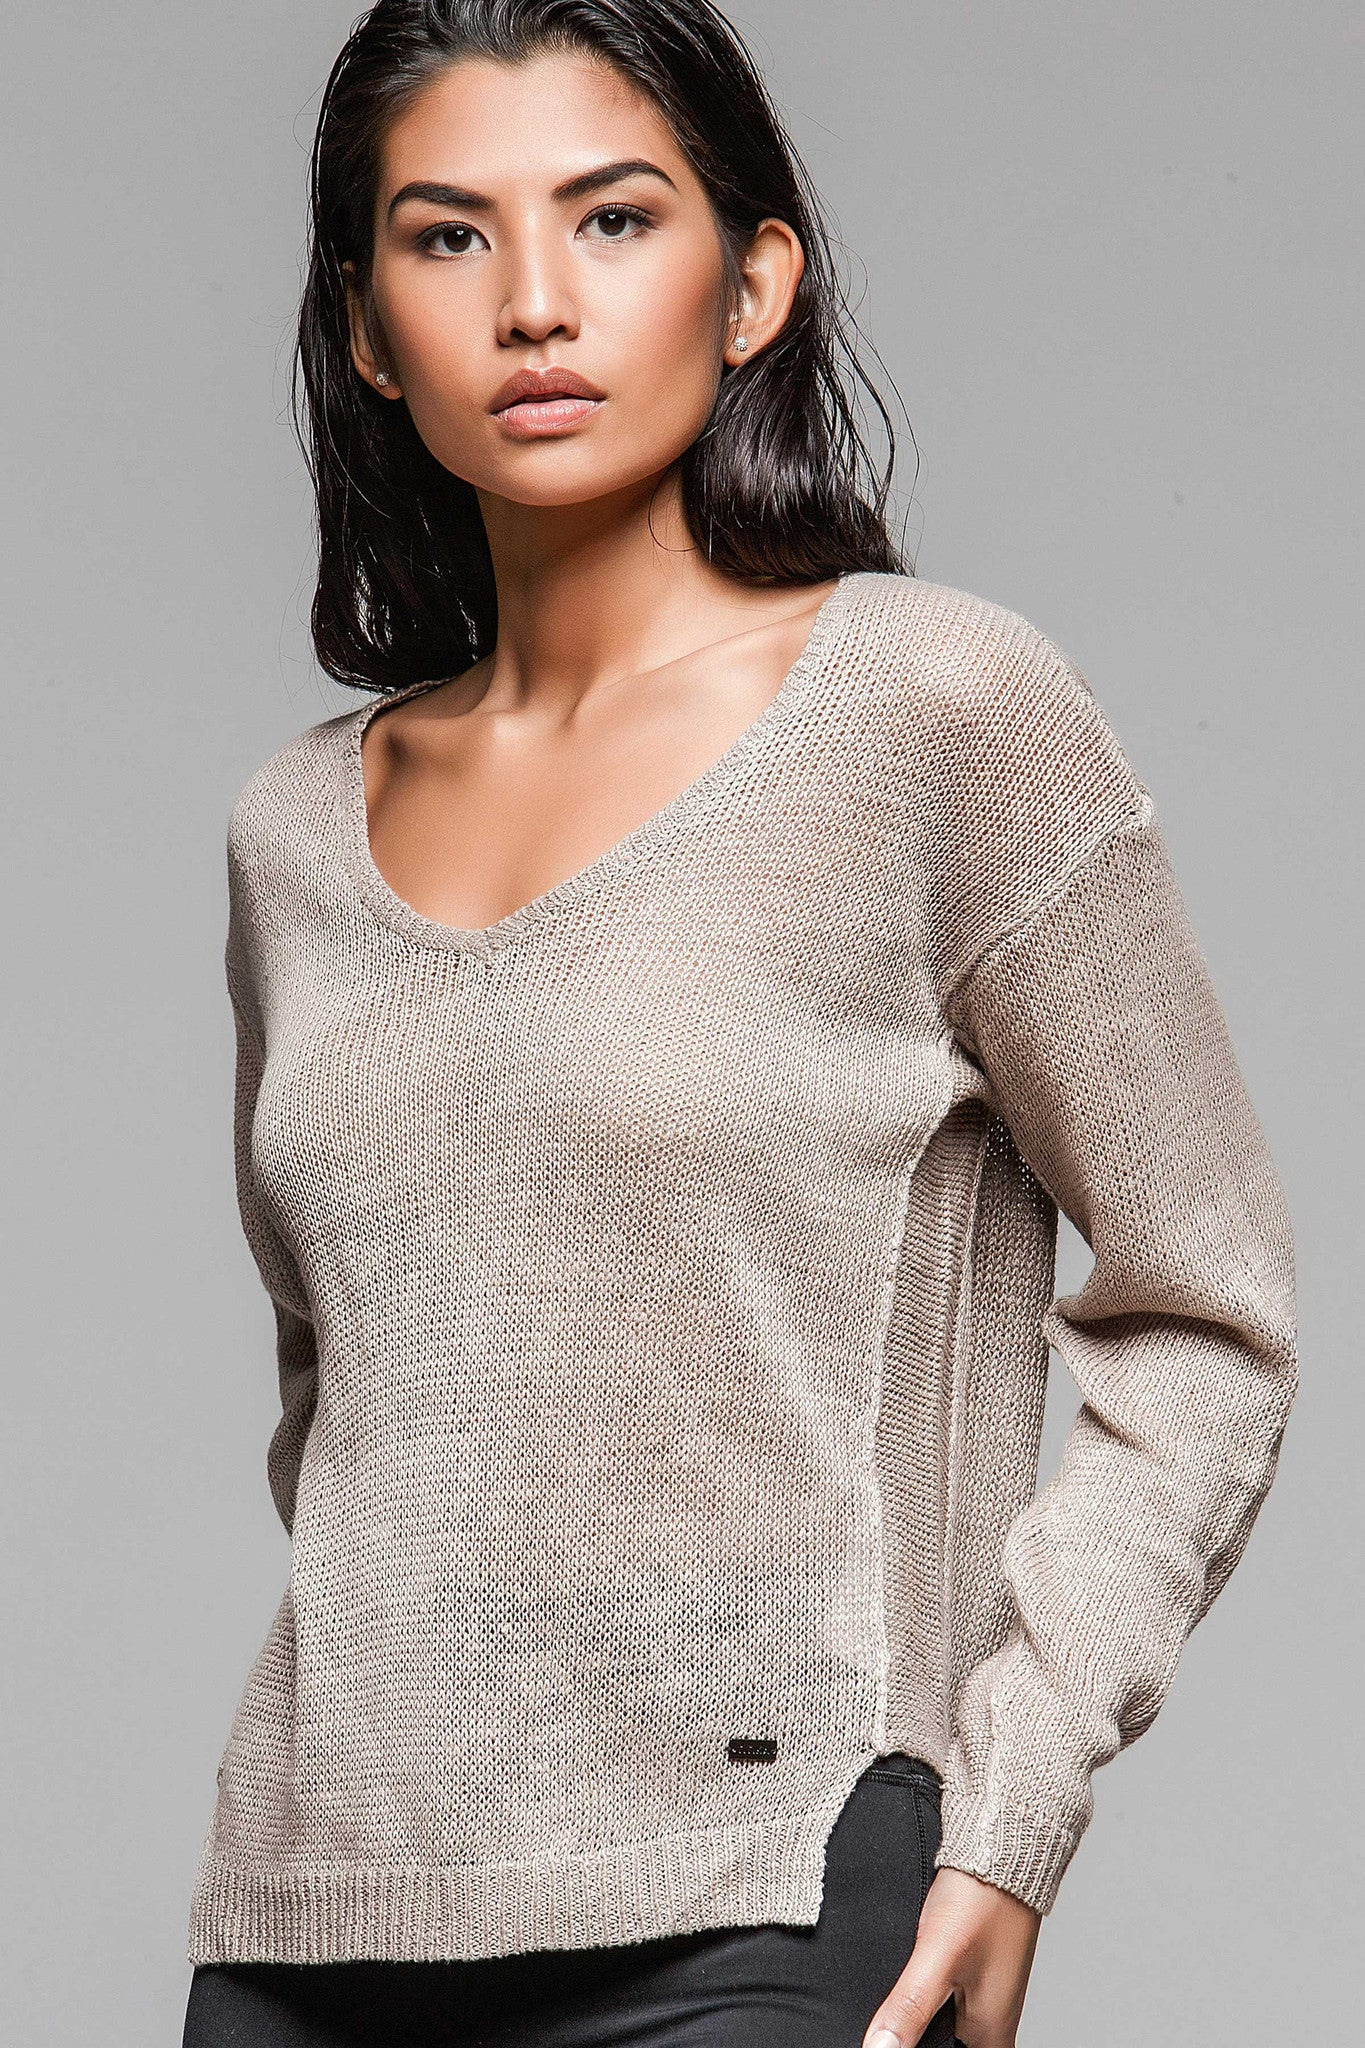 Linden Linen Light Sweater